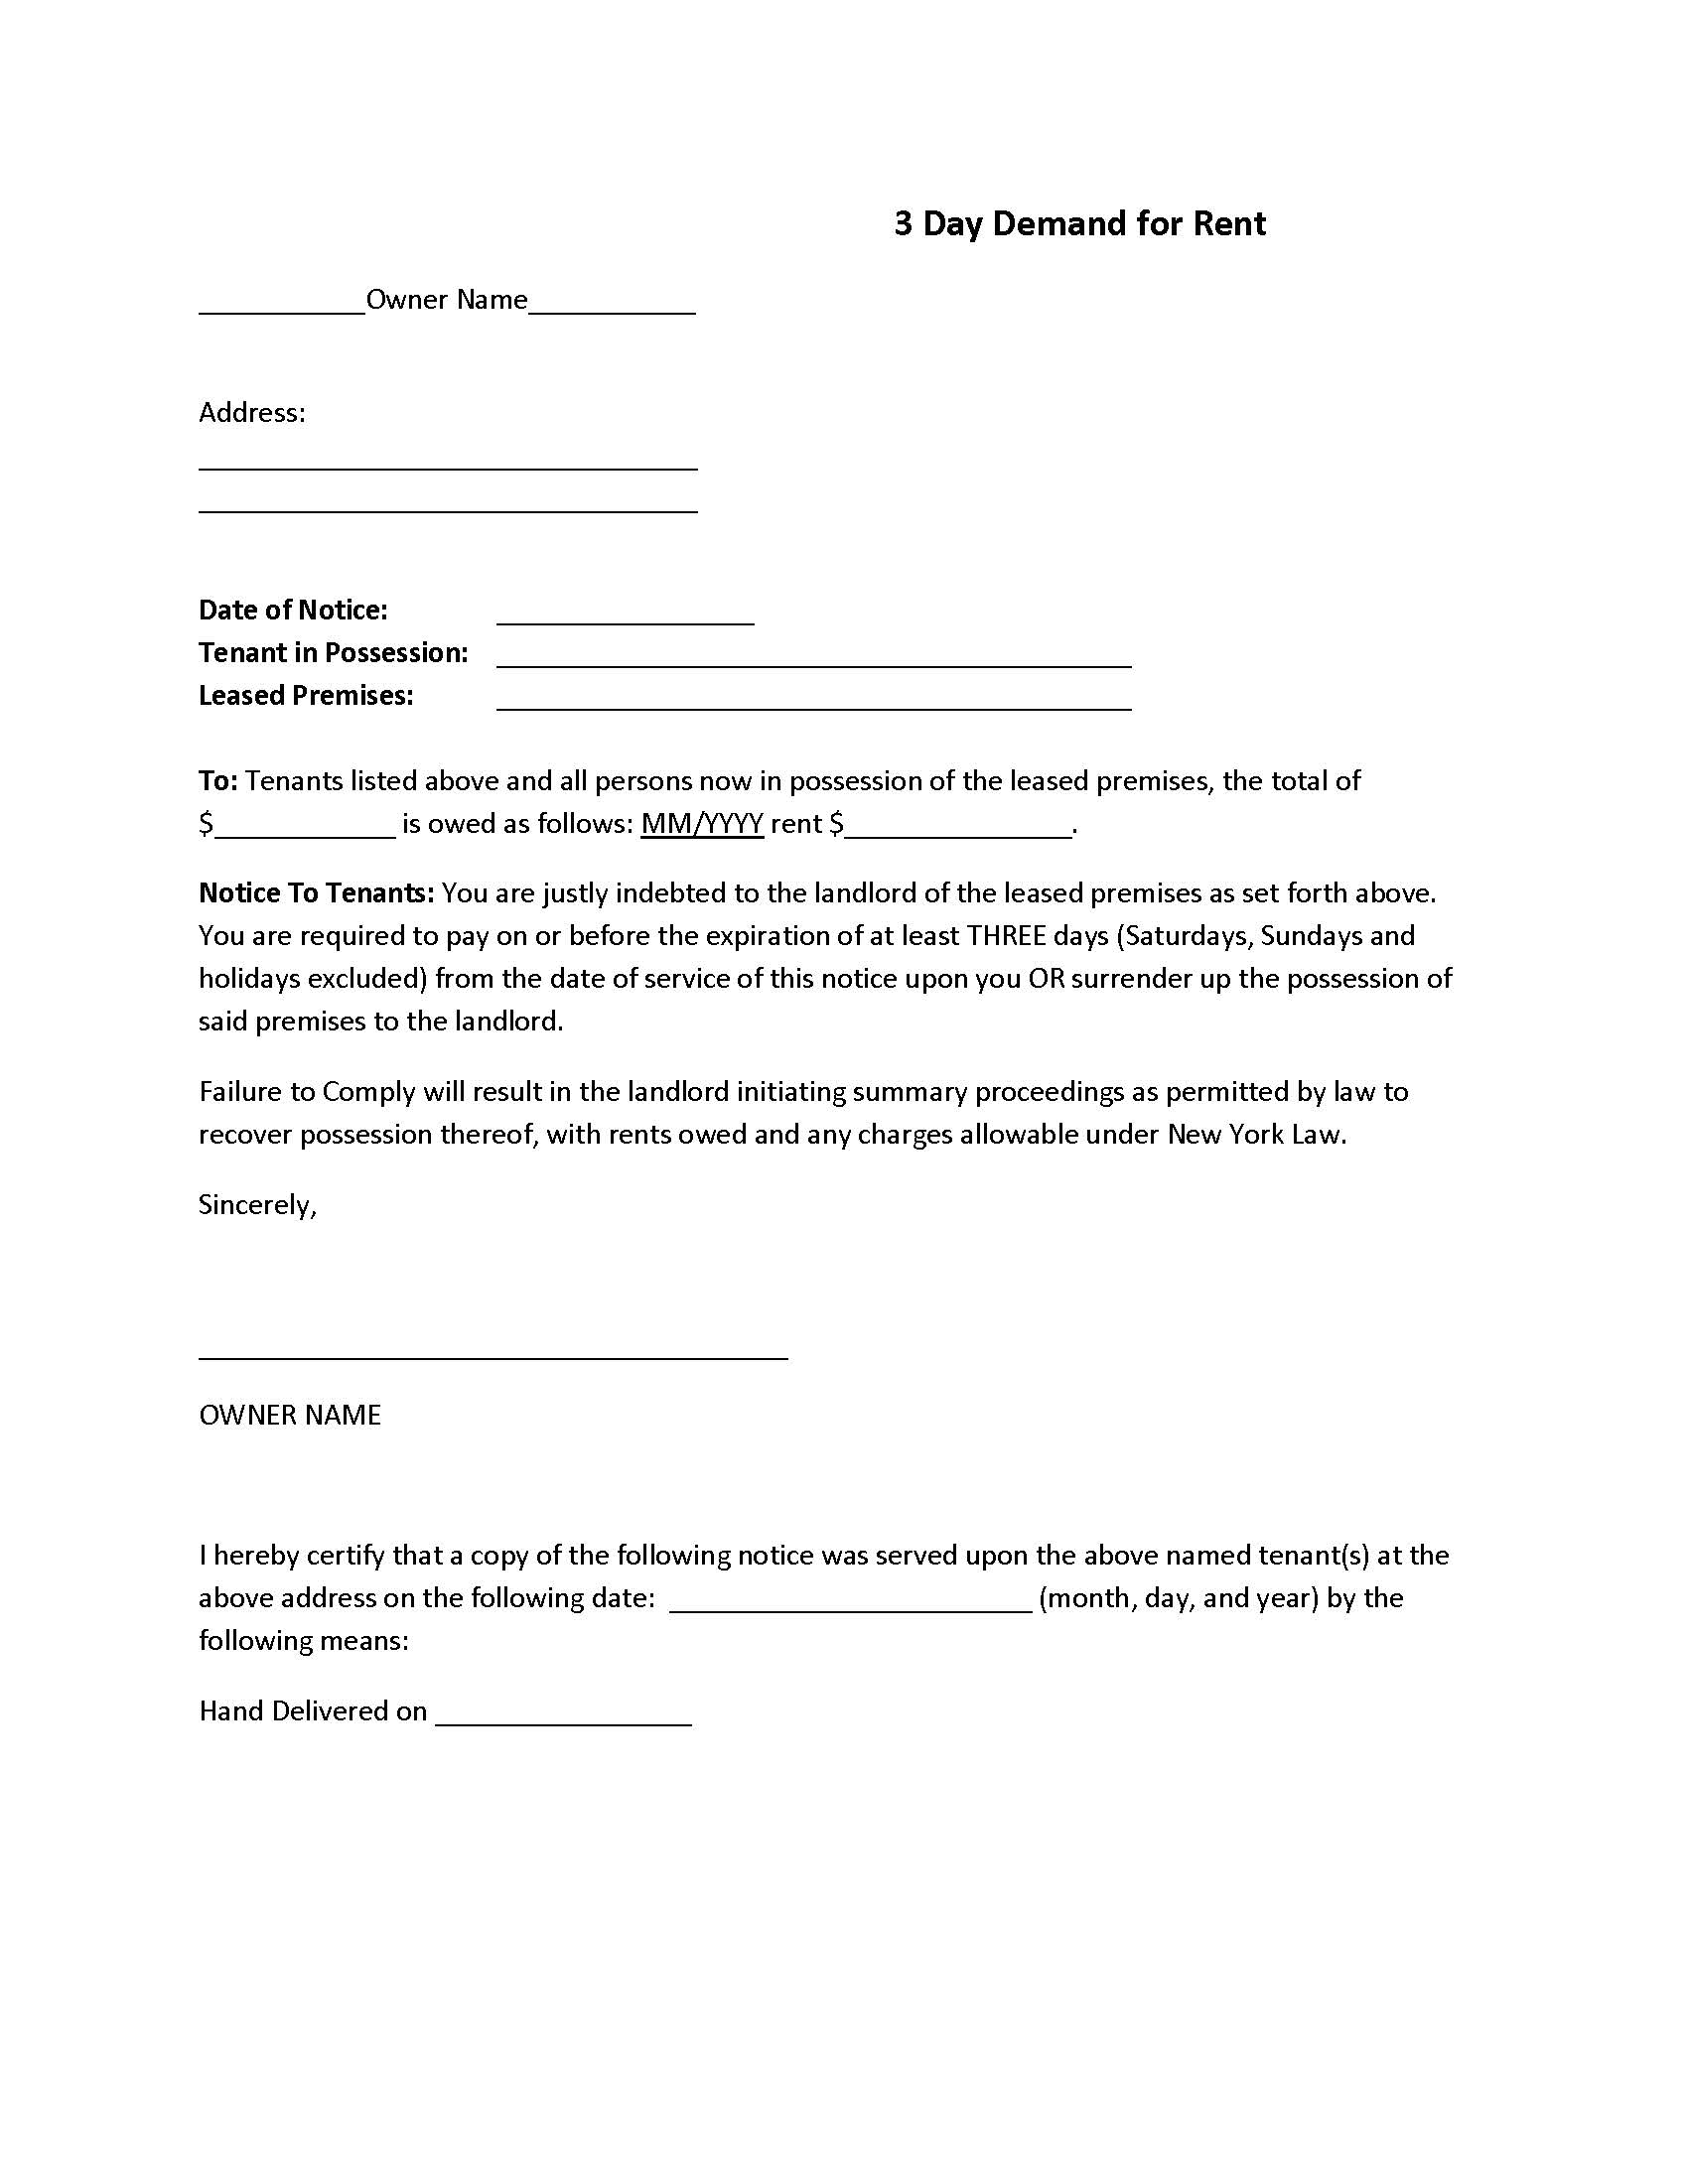 Letter Of Demand Template from www.freeauthorizationforms.com